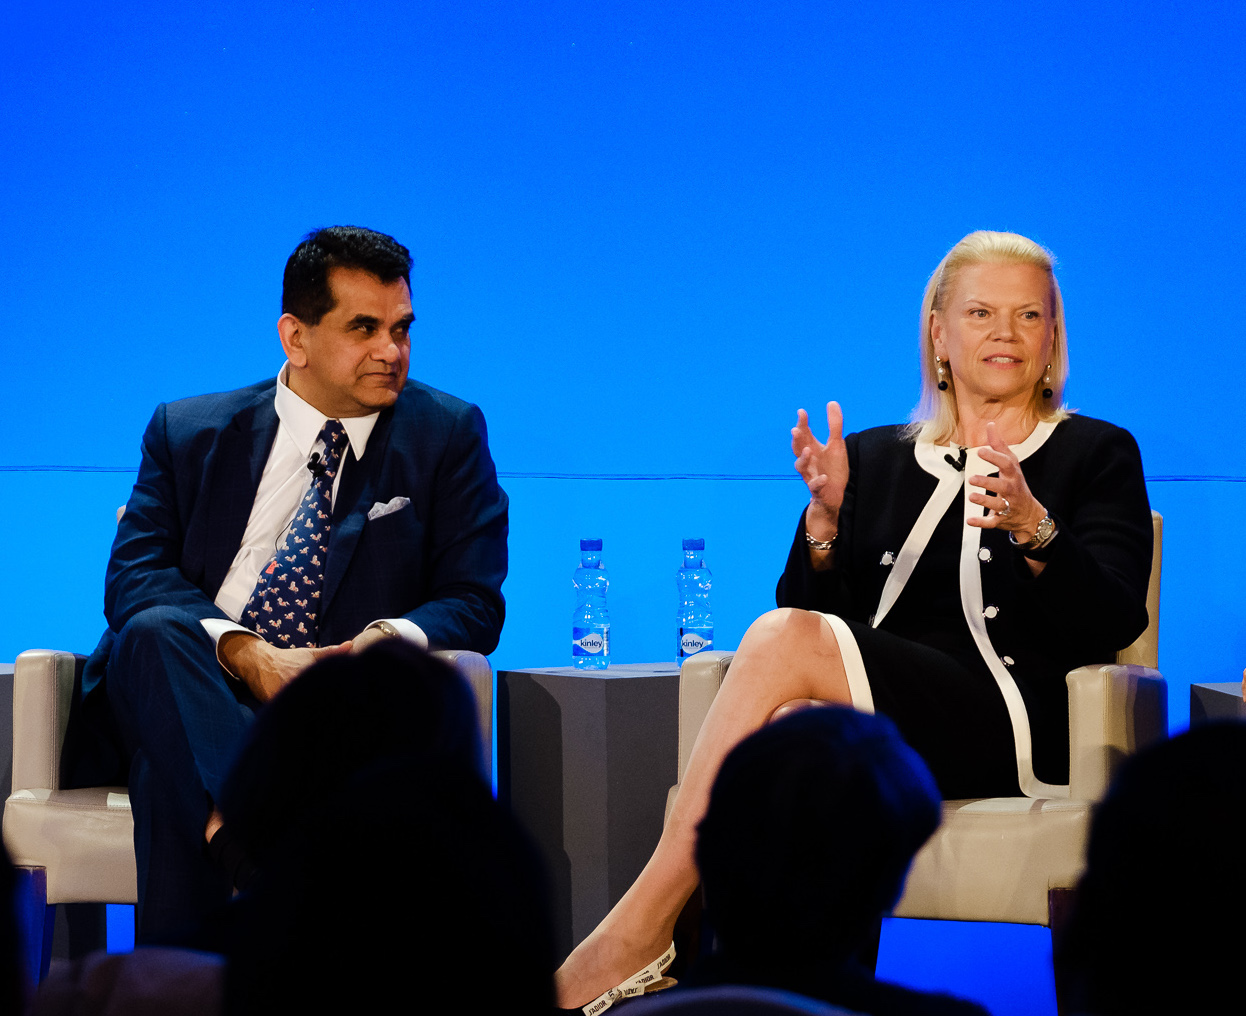 Ginni Rommetty Chairman & CEO IBM with Amitabh Kant CEO Niti Aayog seen together at the IBM Skills Summit in New Delhi